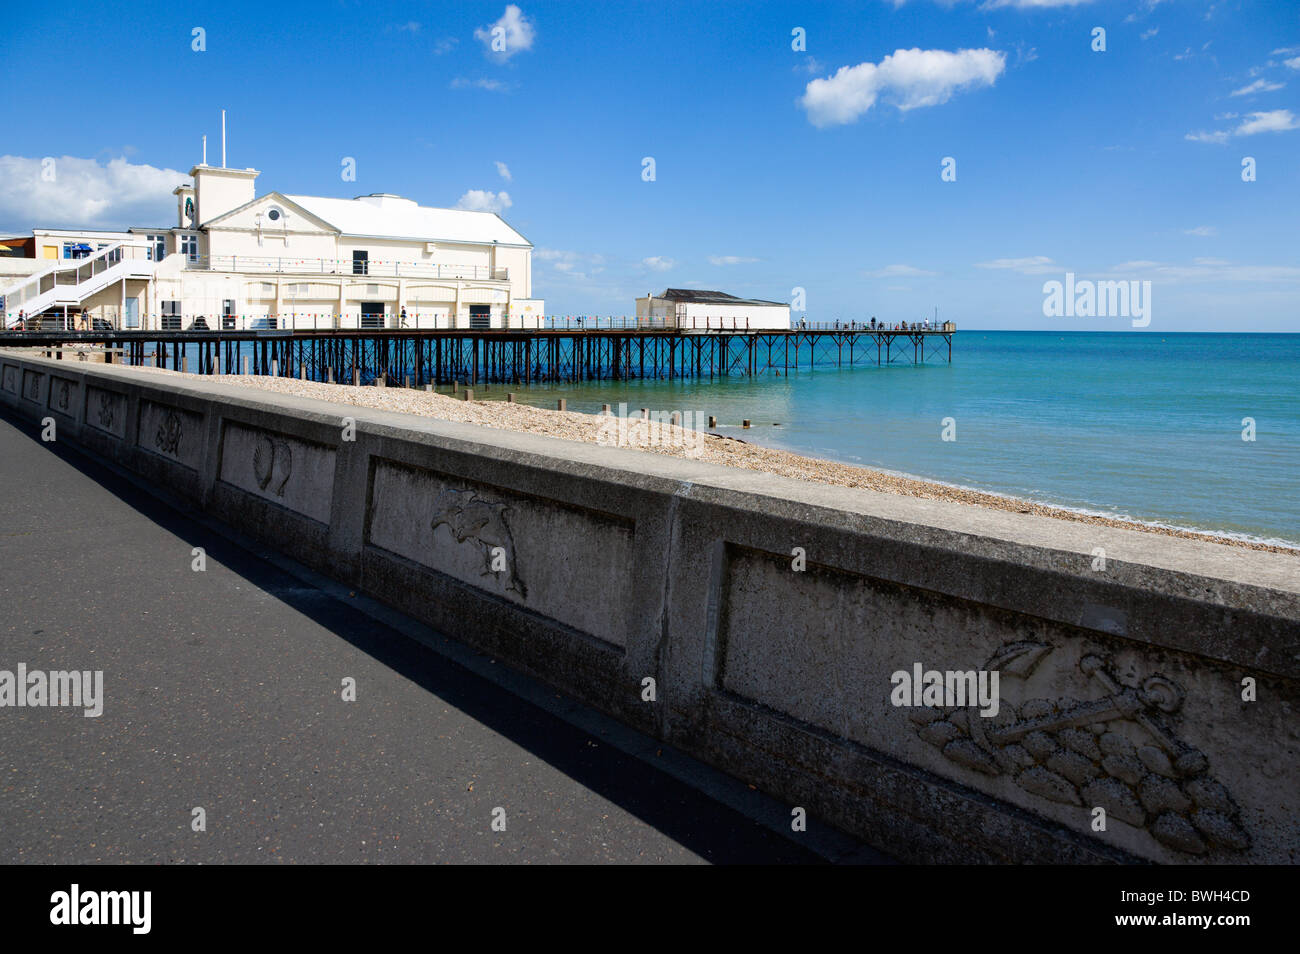 England West Sussex Bognor Regis Pier and people fishing off the end and with pebble beach and promenade sea defense - Stock Image